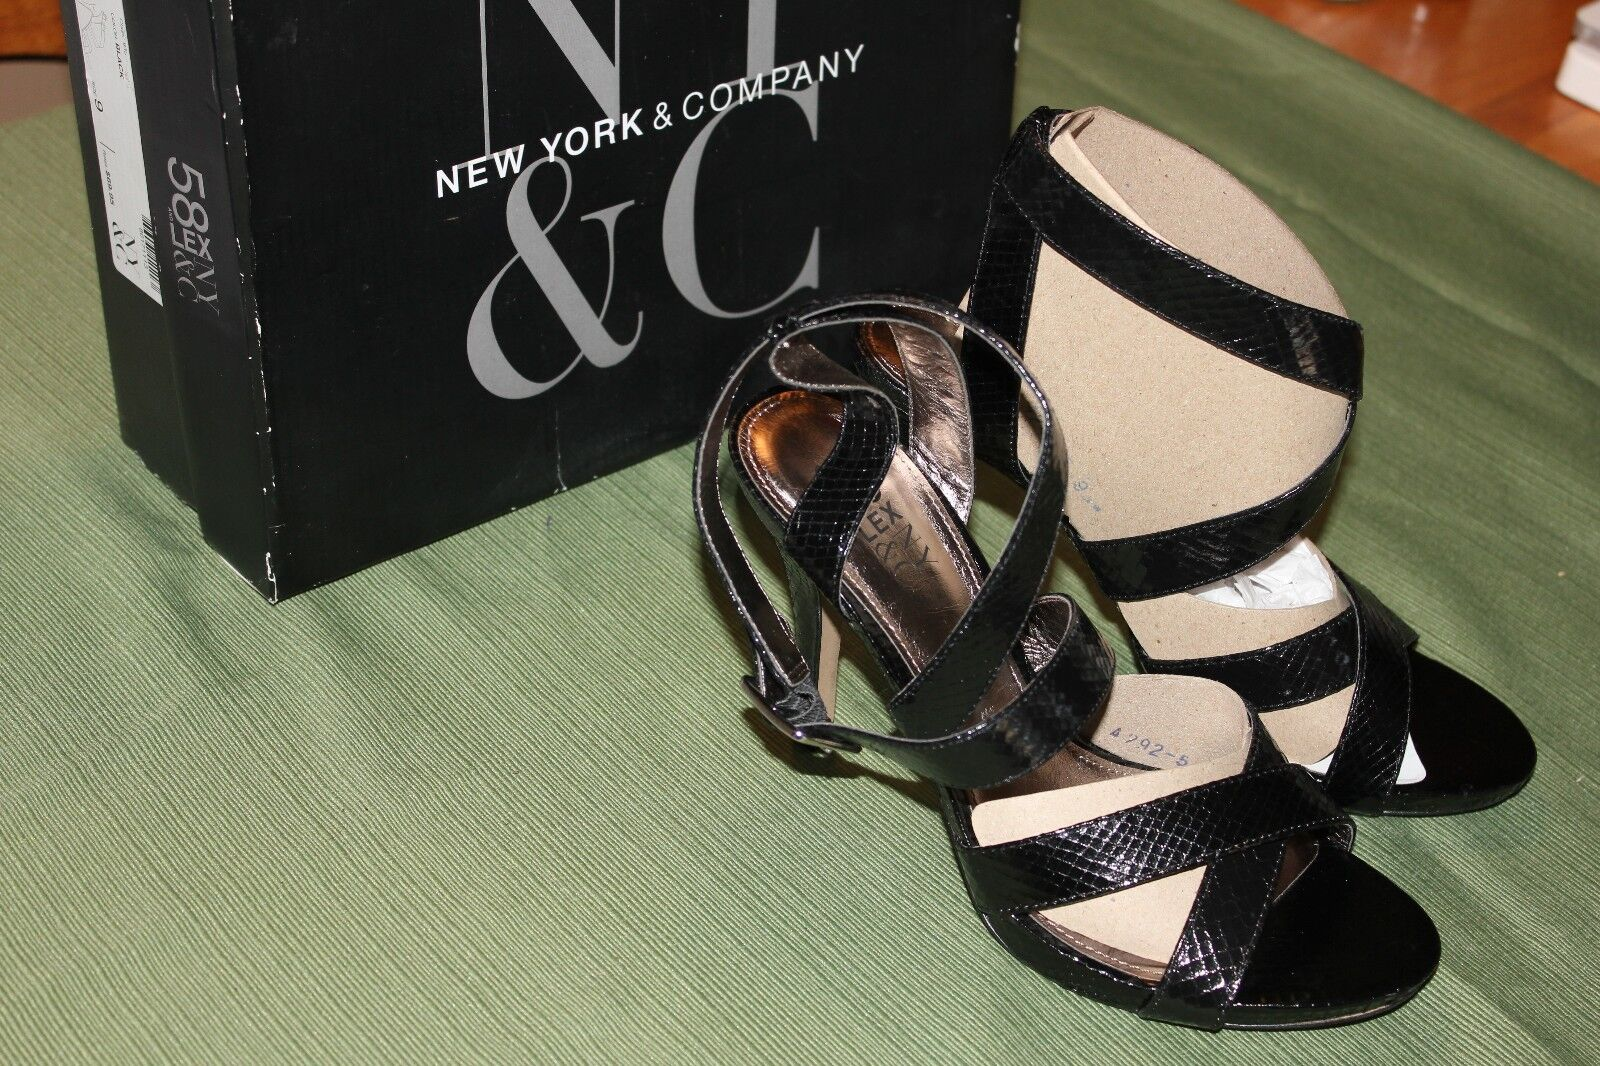 NEW YORK & CO BLACK STRAPPY SNAKE SKIN LOOK STILETTO NIB HEELS WOMEN'S SZ 9 NIB STILETTO 06e376